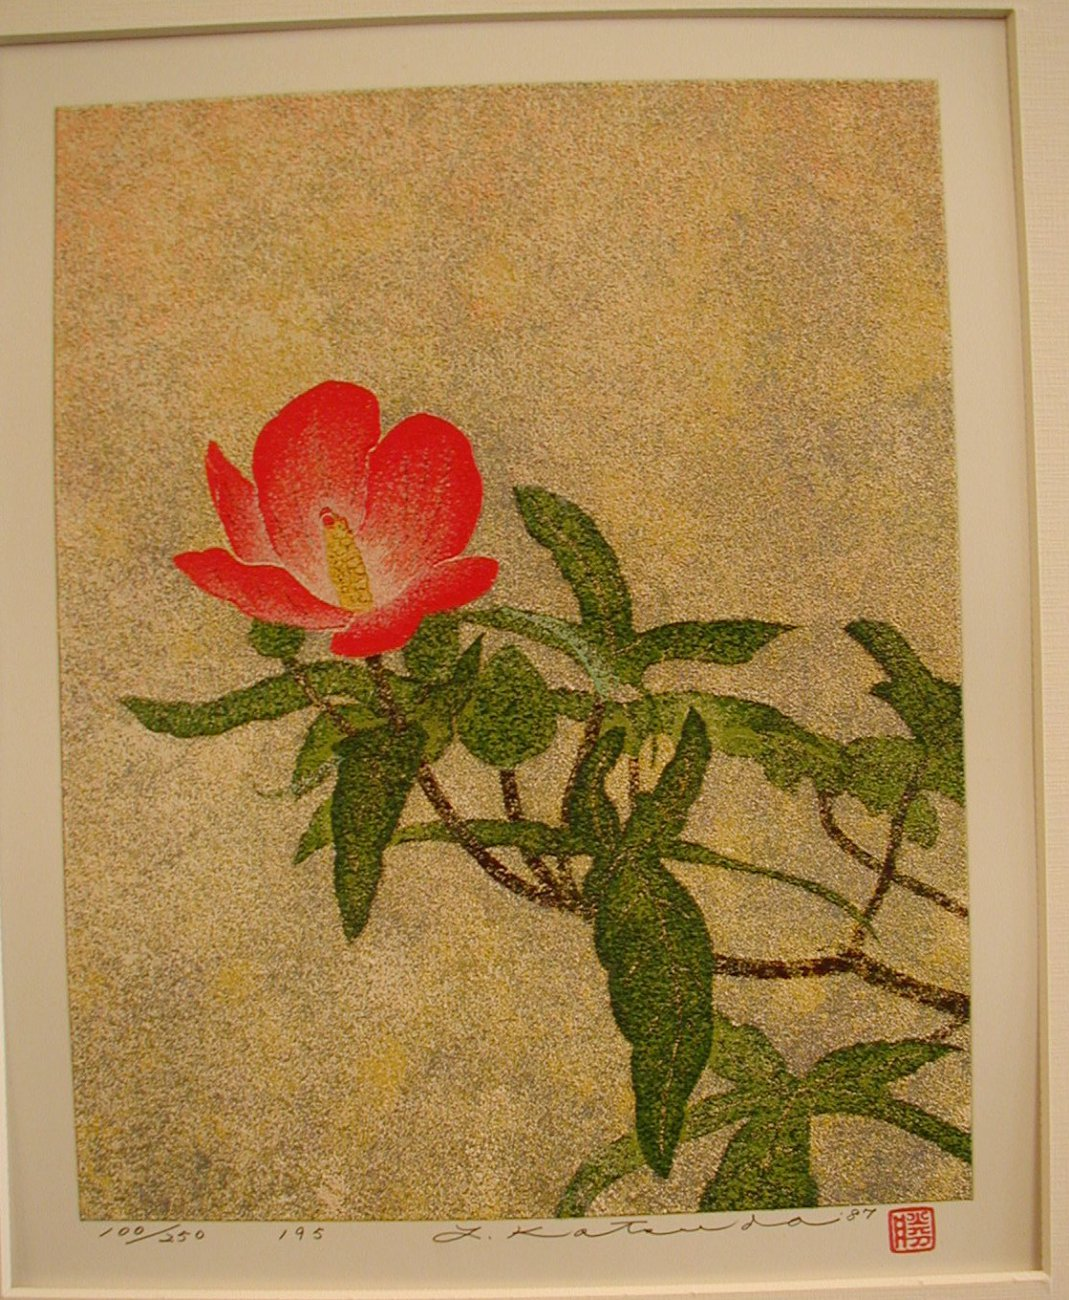 No. 195 Benibana Wata (Red Flower Cotton). '84.JPG